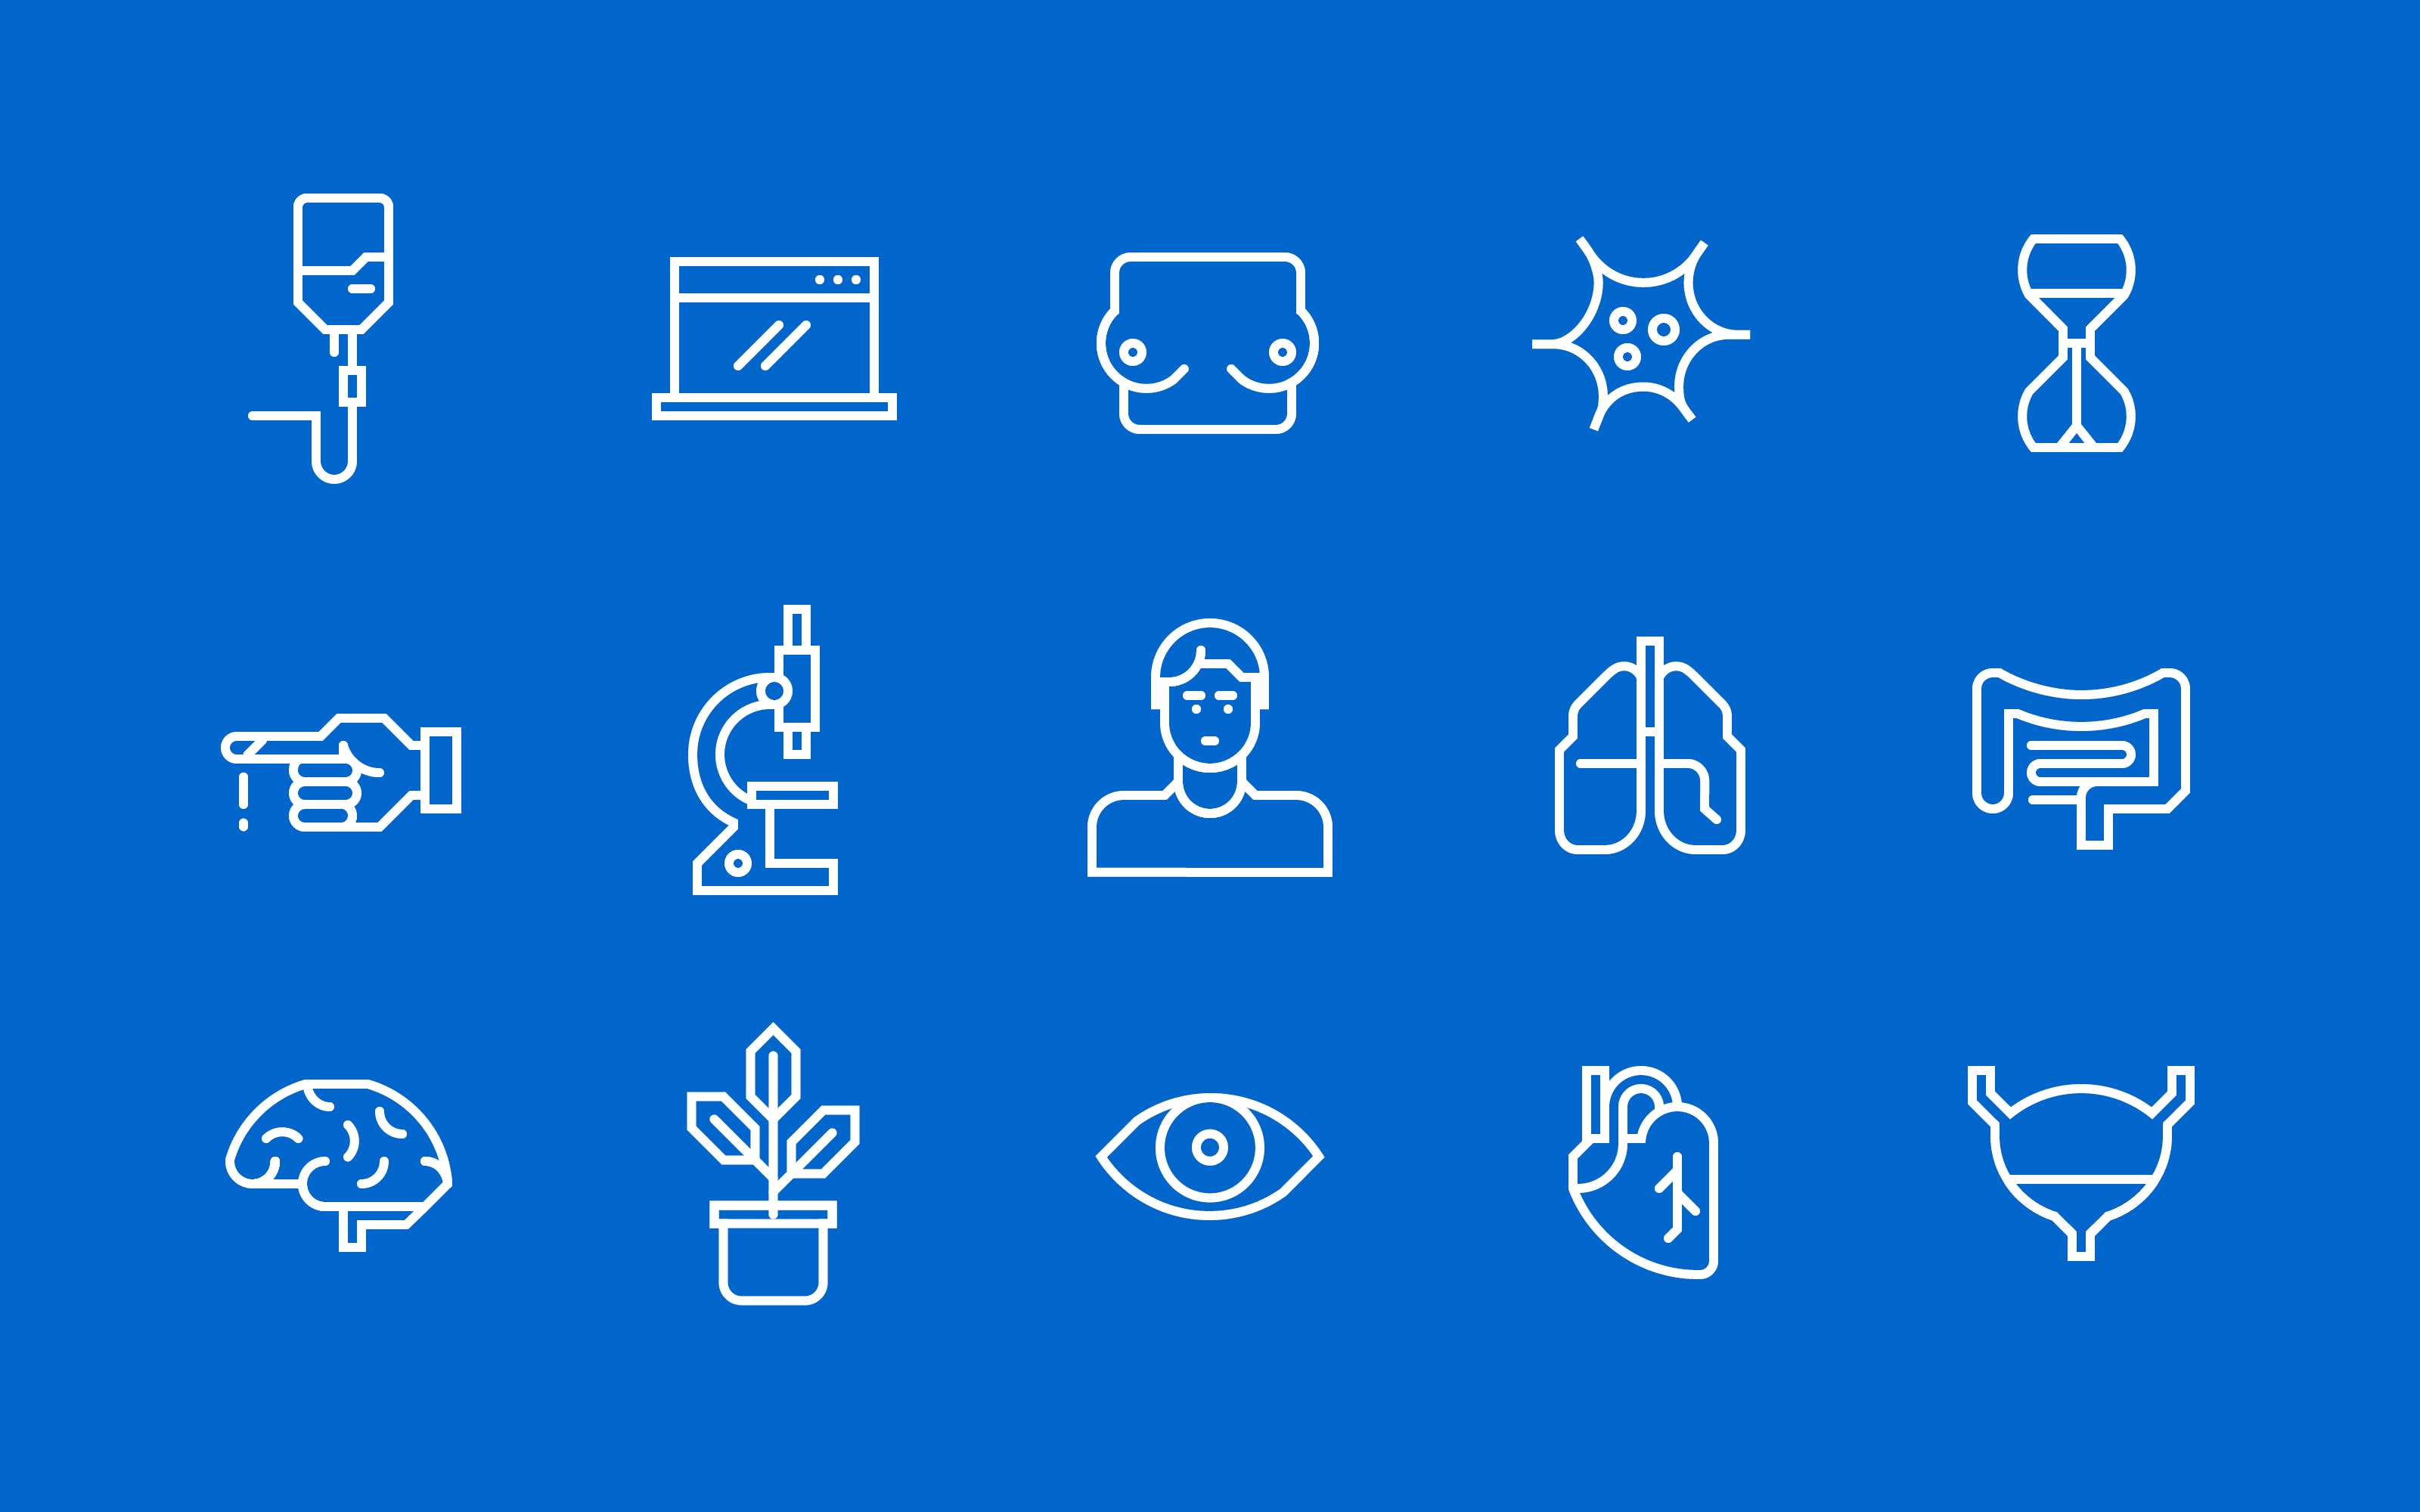 Superdot Studio Robust modular icon system for global brand communication for Roche